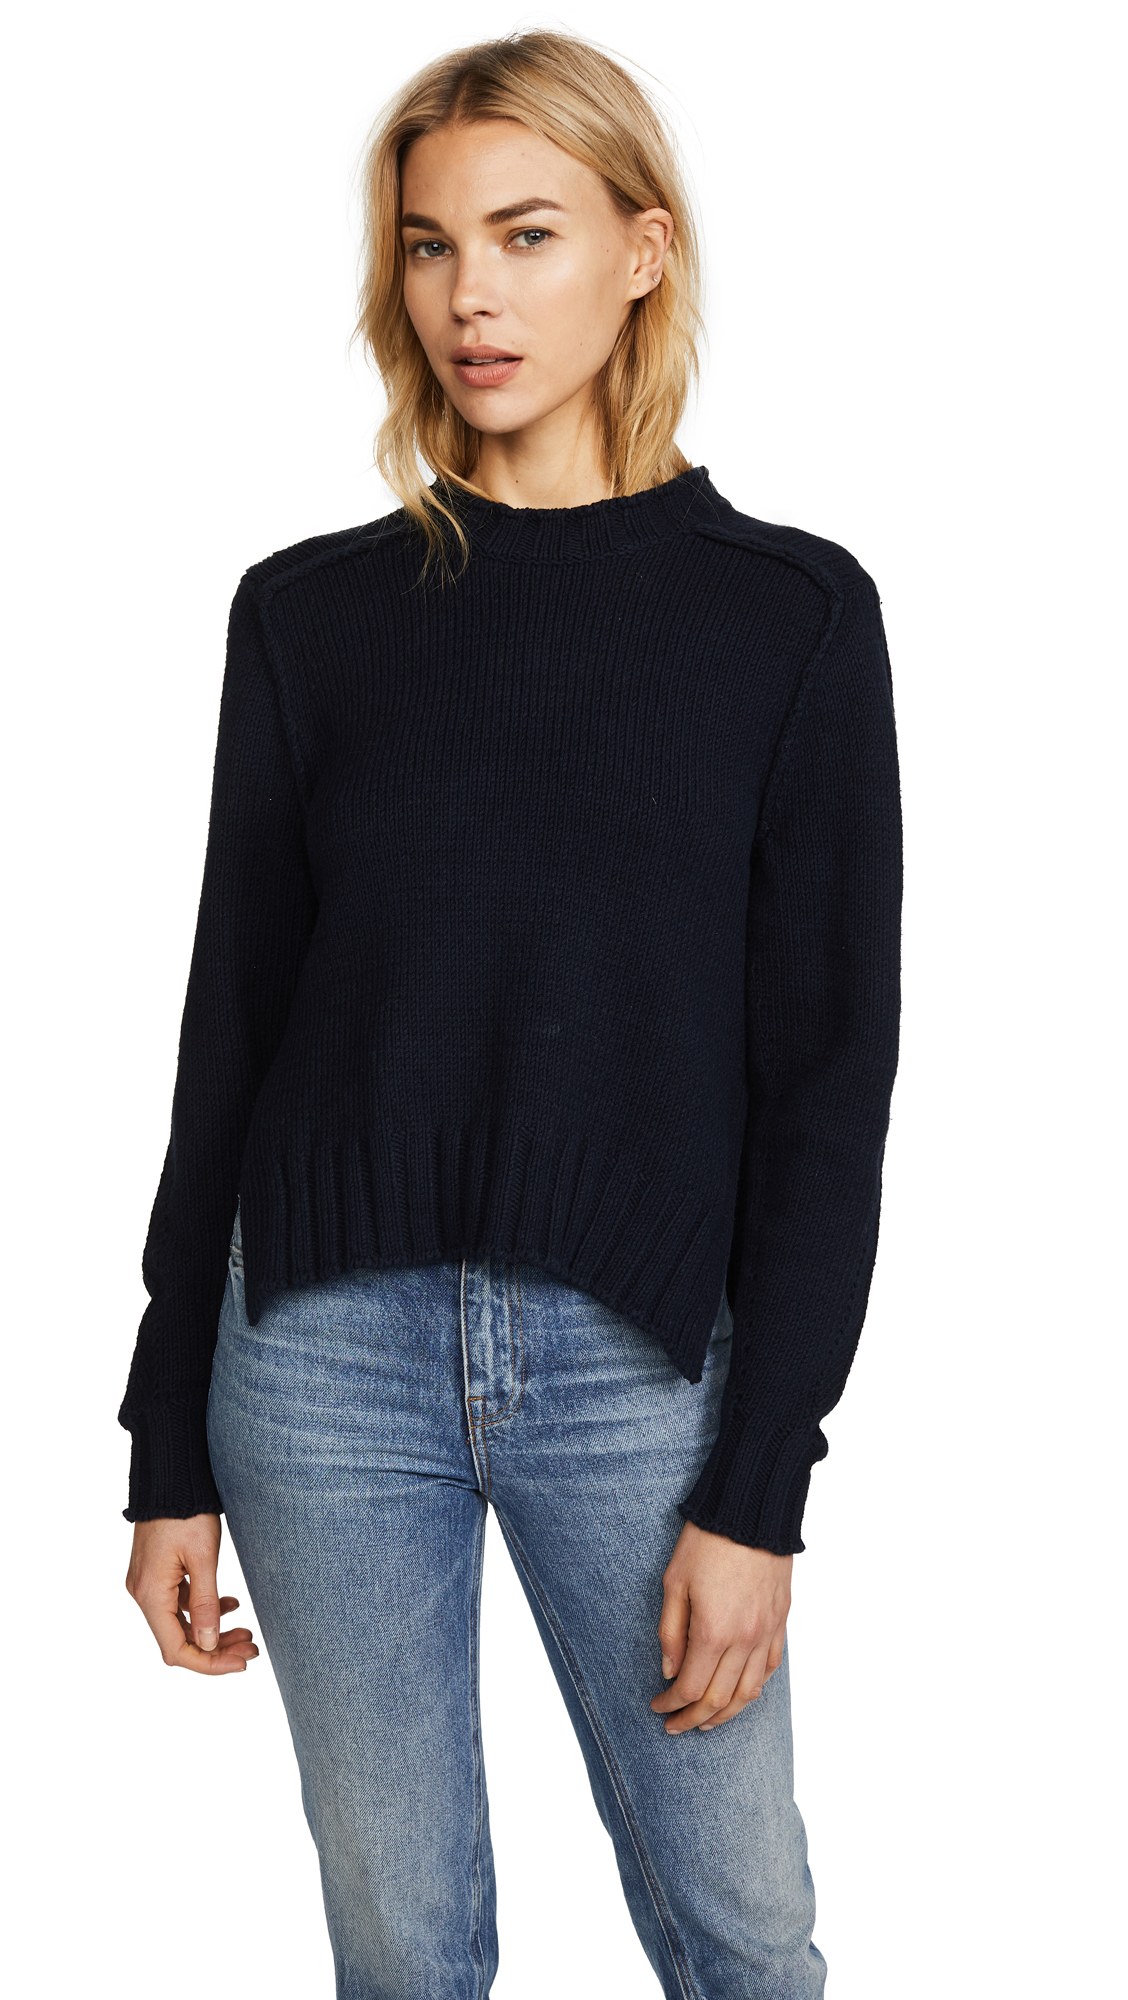 360 SWEATER Kendra Sweater